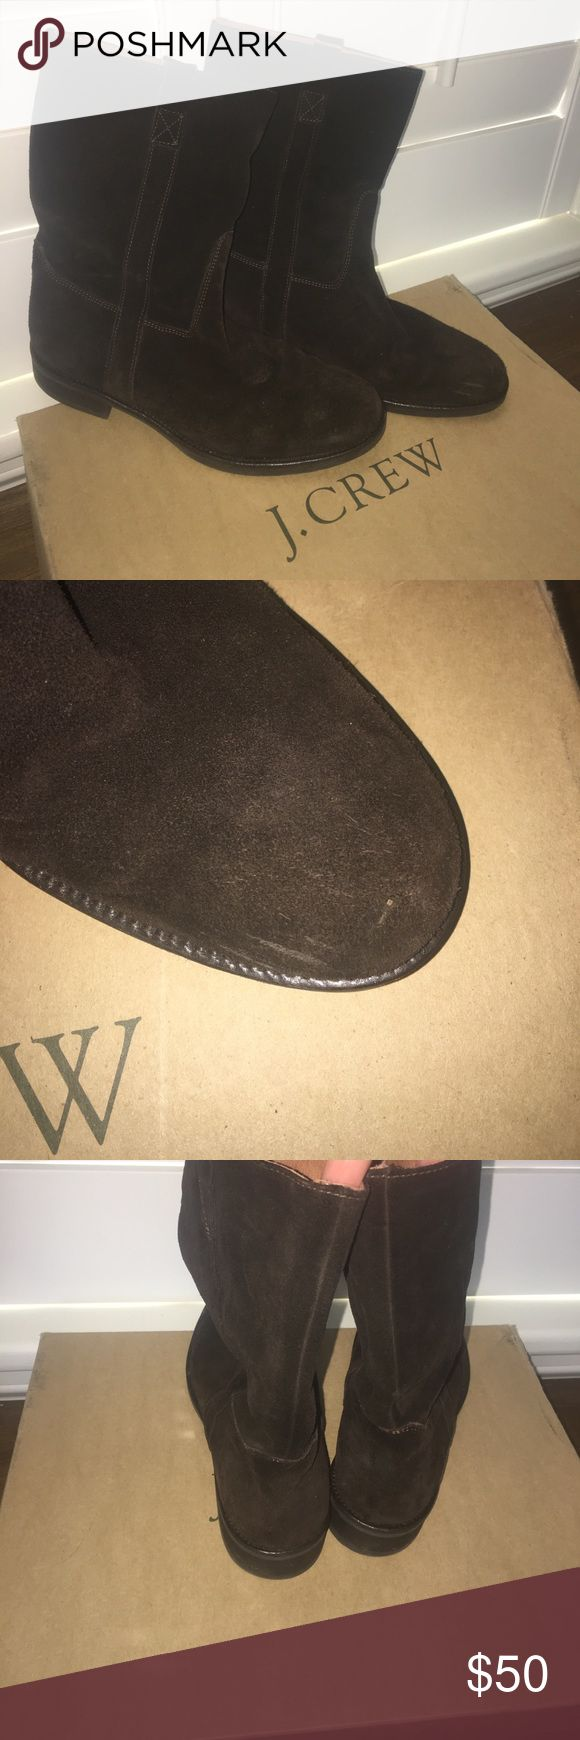 J Crew Short Brewster Suede Boots Worn just a couple of times - slight mark on left toe - see pic - J Crew Short Brewster Suede flat boots in espresso.  Size 9 J Crew Shoes Winter & Rain Boots